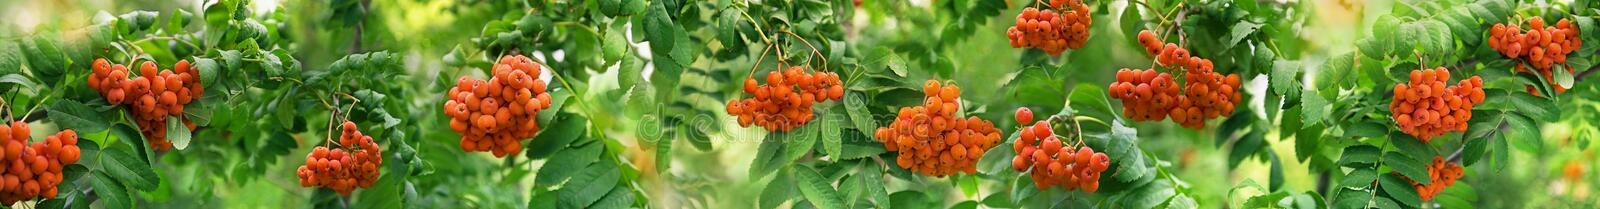 Ripe red Rowan berries on beautiful bokeh nature background with green leaves, wide panorama stock image